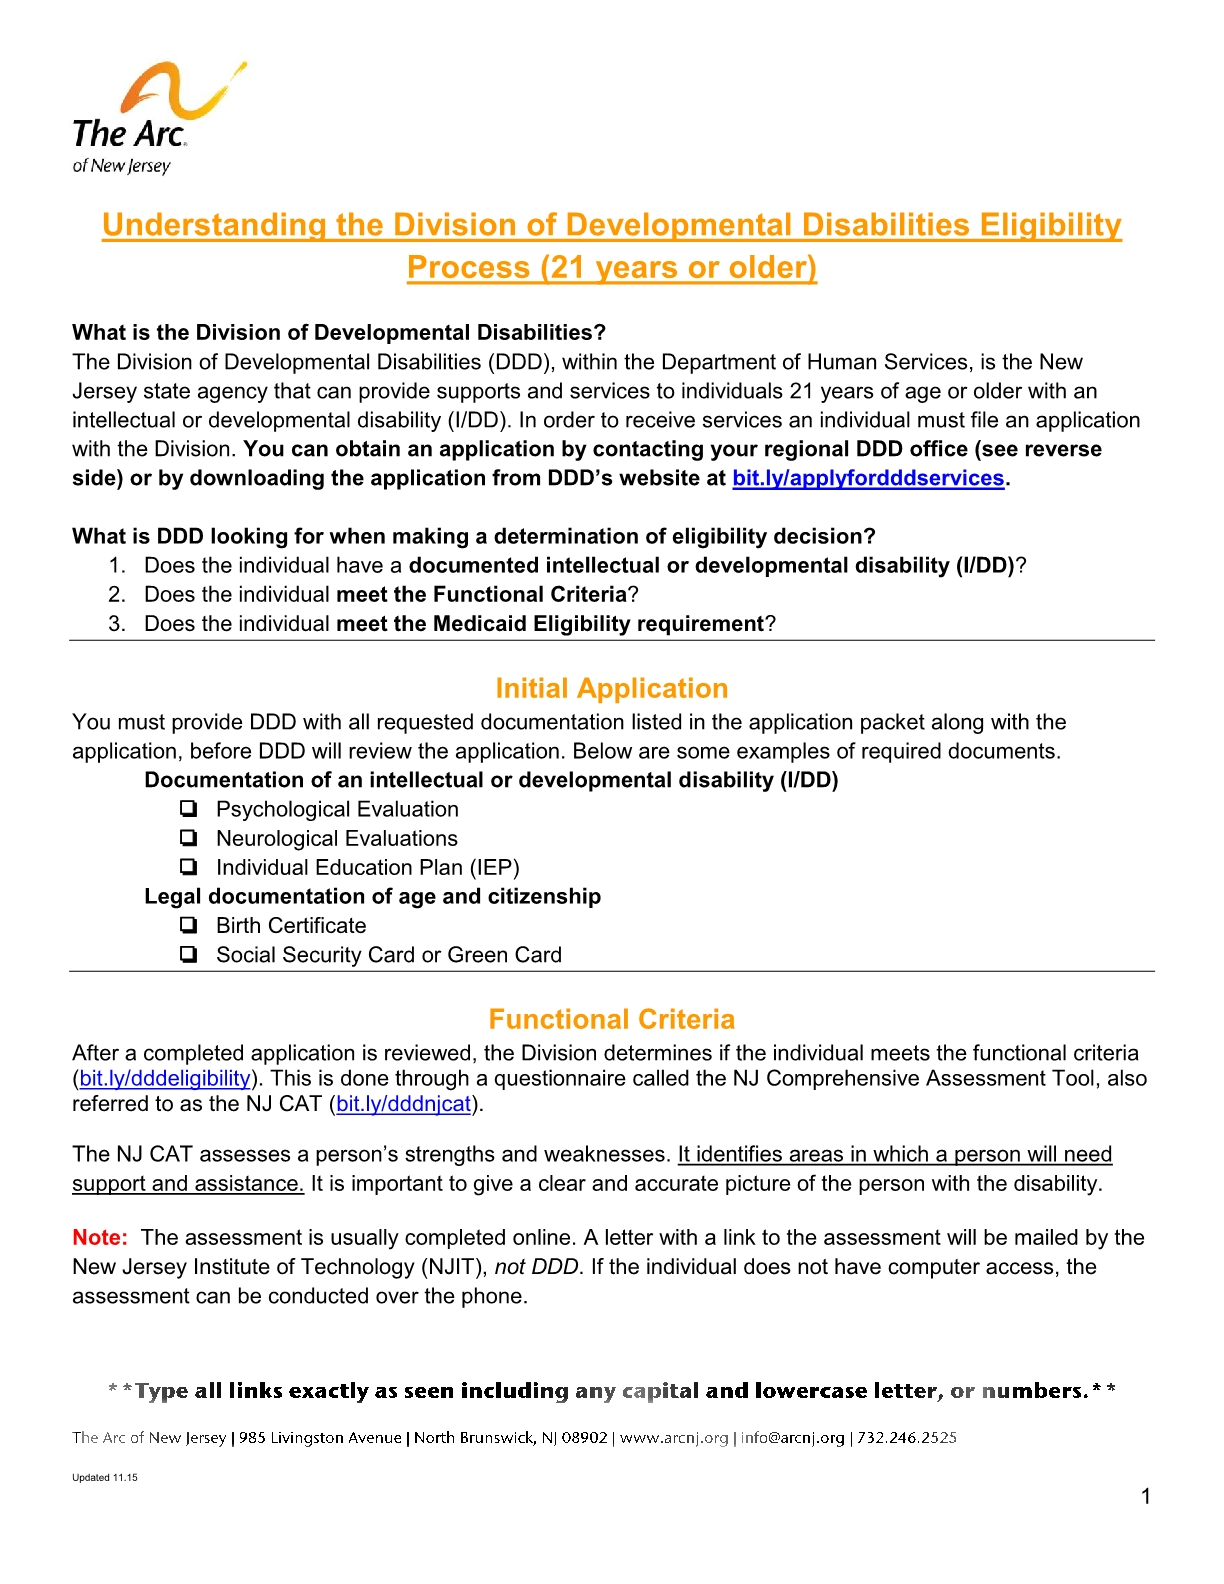 The arc of new jersey family institute resources fact sheets understanding ddds determination of eligibility process english 1betcityfo Choice Image